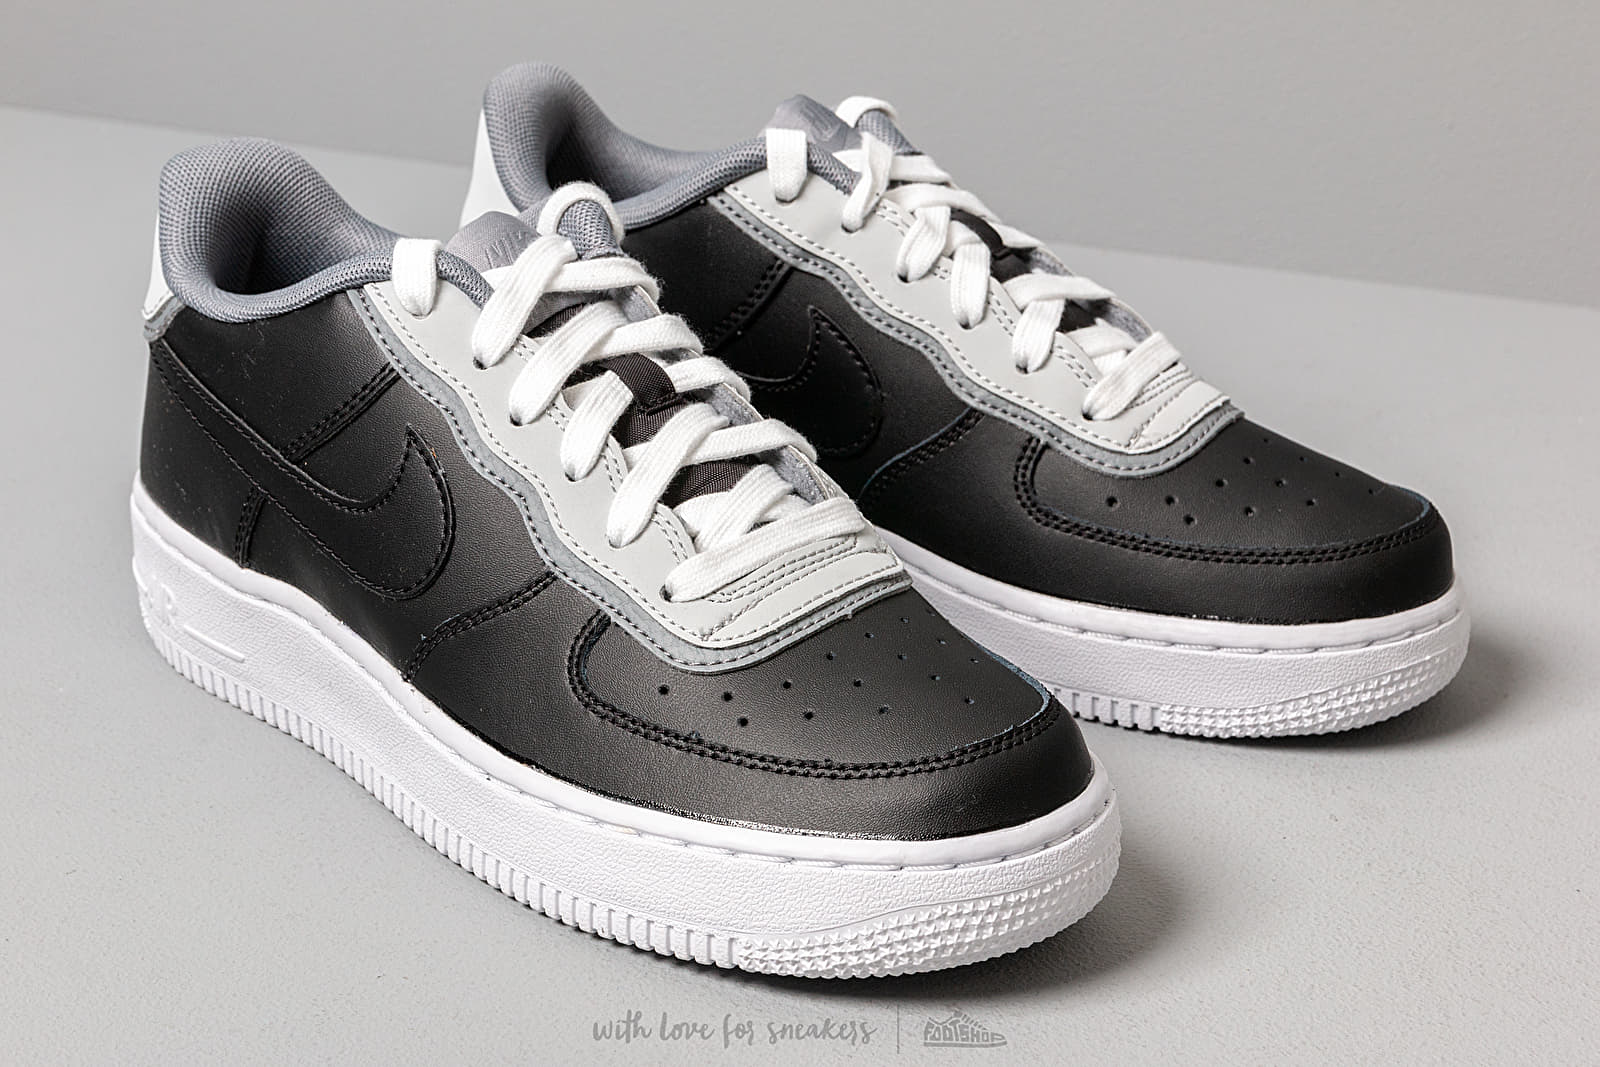 Nike Air Force 1 Lv8 1 Dbl Gs Black Black Pure Platinum Cool Grey | Footshop